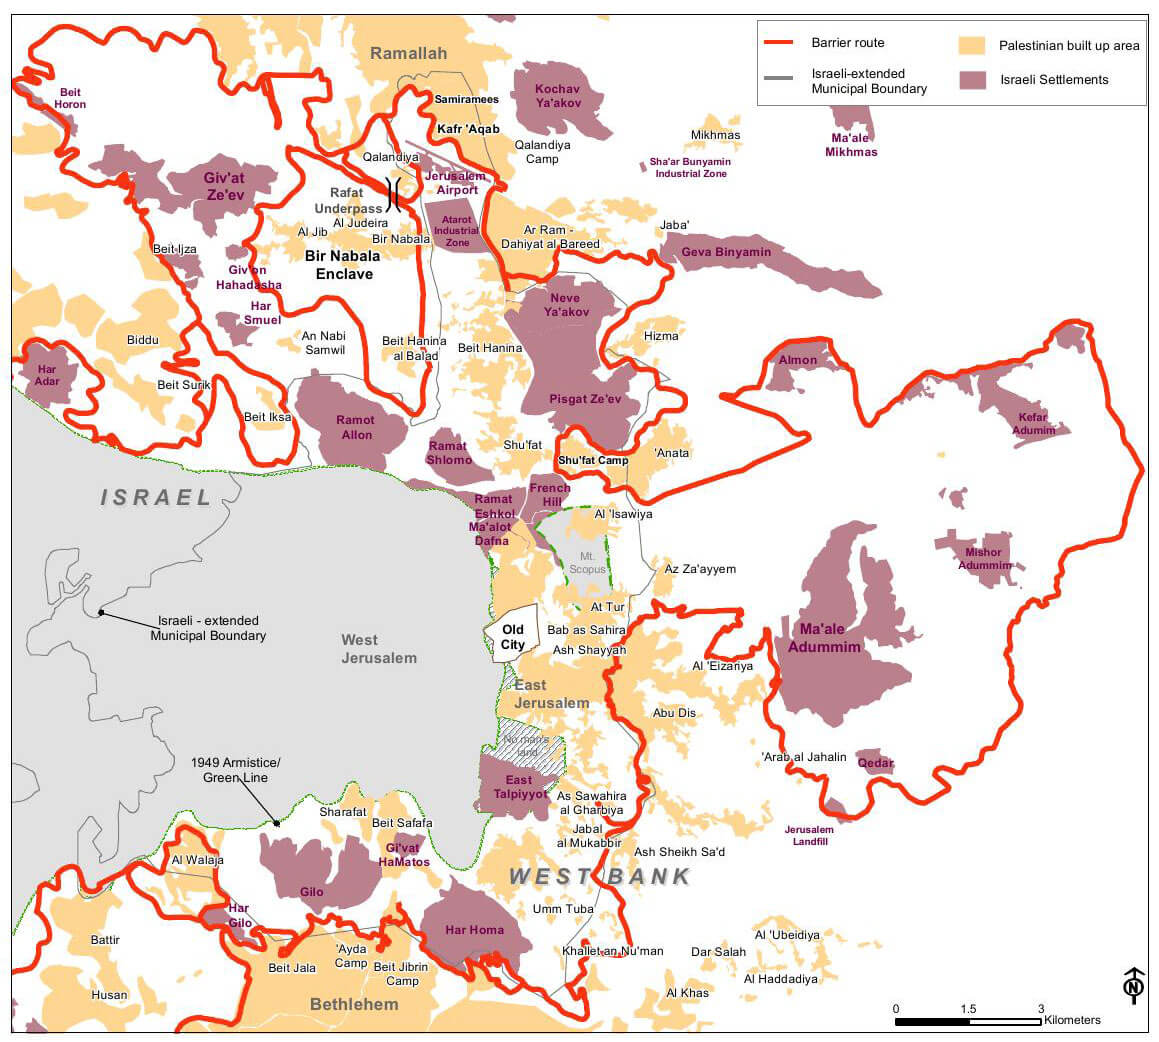 East Jerusalem map 2007 - Israel's settlements: 50 years of land theft explained